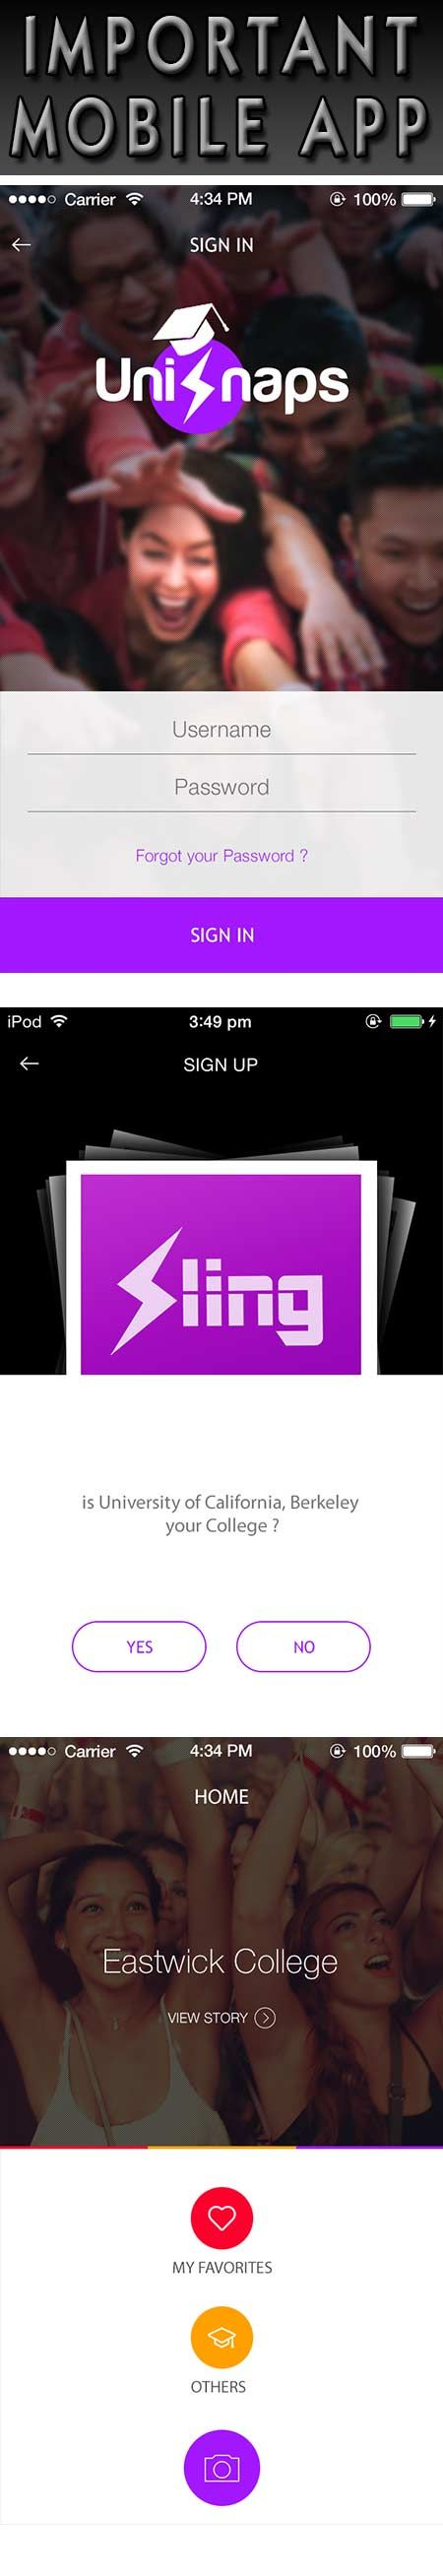 Sling - College Life – It's finally here…  Sling is a social networking app that will enable you to share a story in a unique manner. With Sling you can upload your favorite pictures and videos to your college's stream for your classmates to see. After 24 hours, your shared content will be gone! Poof! Exciting new stories every day!